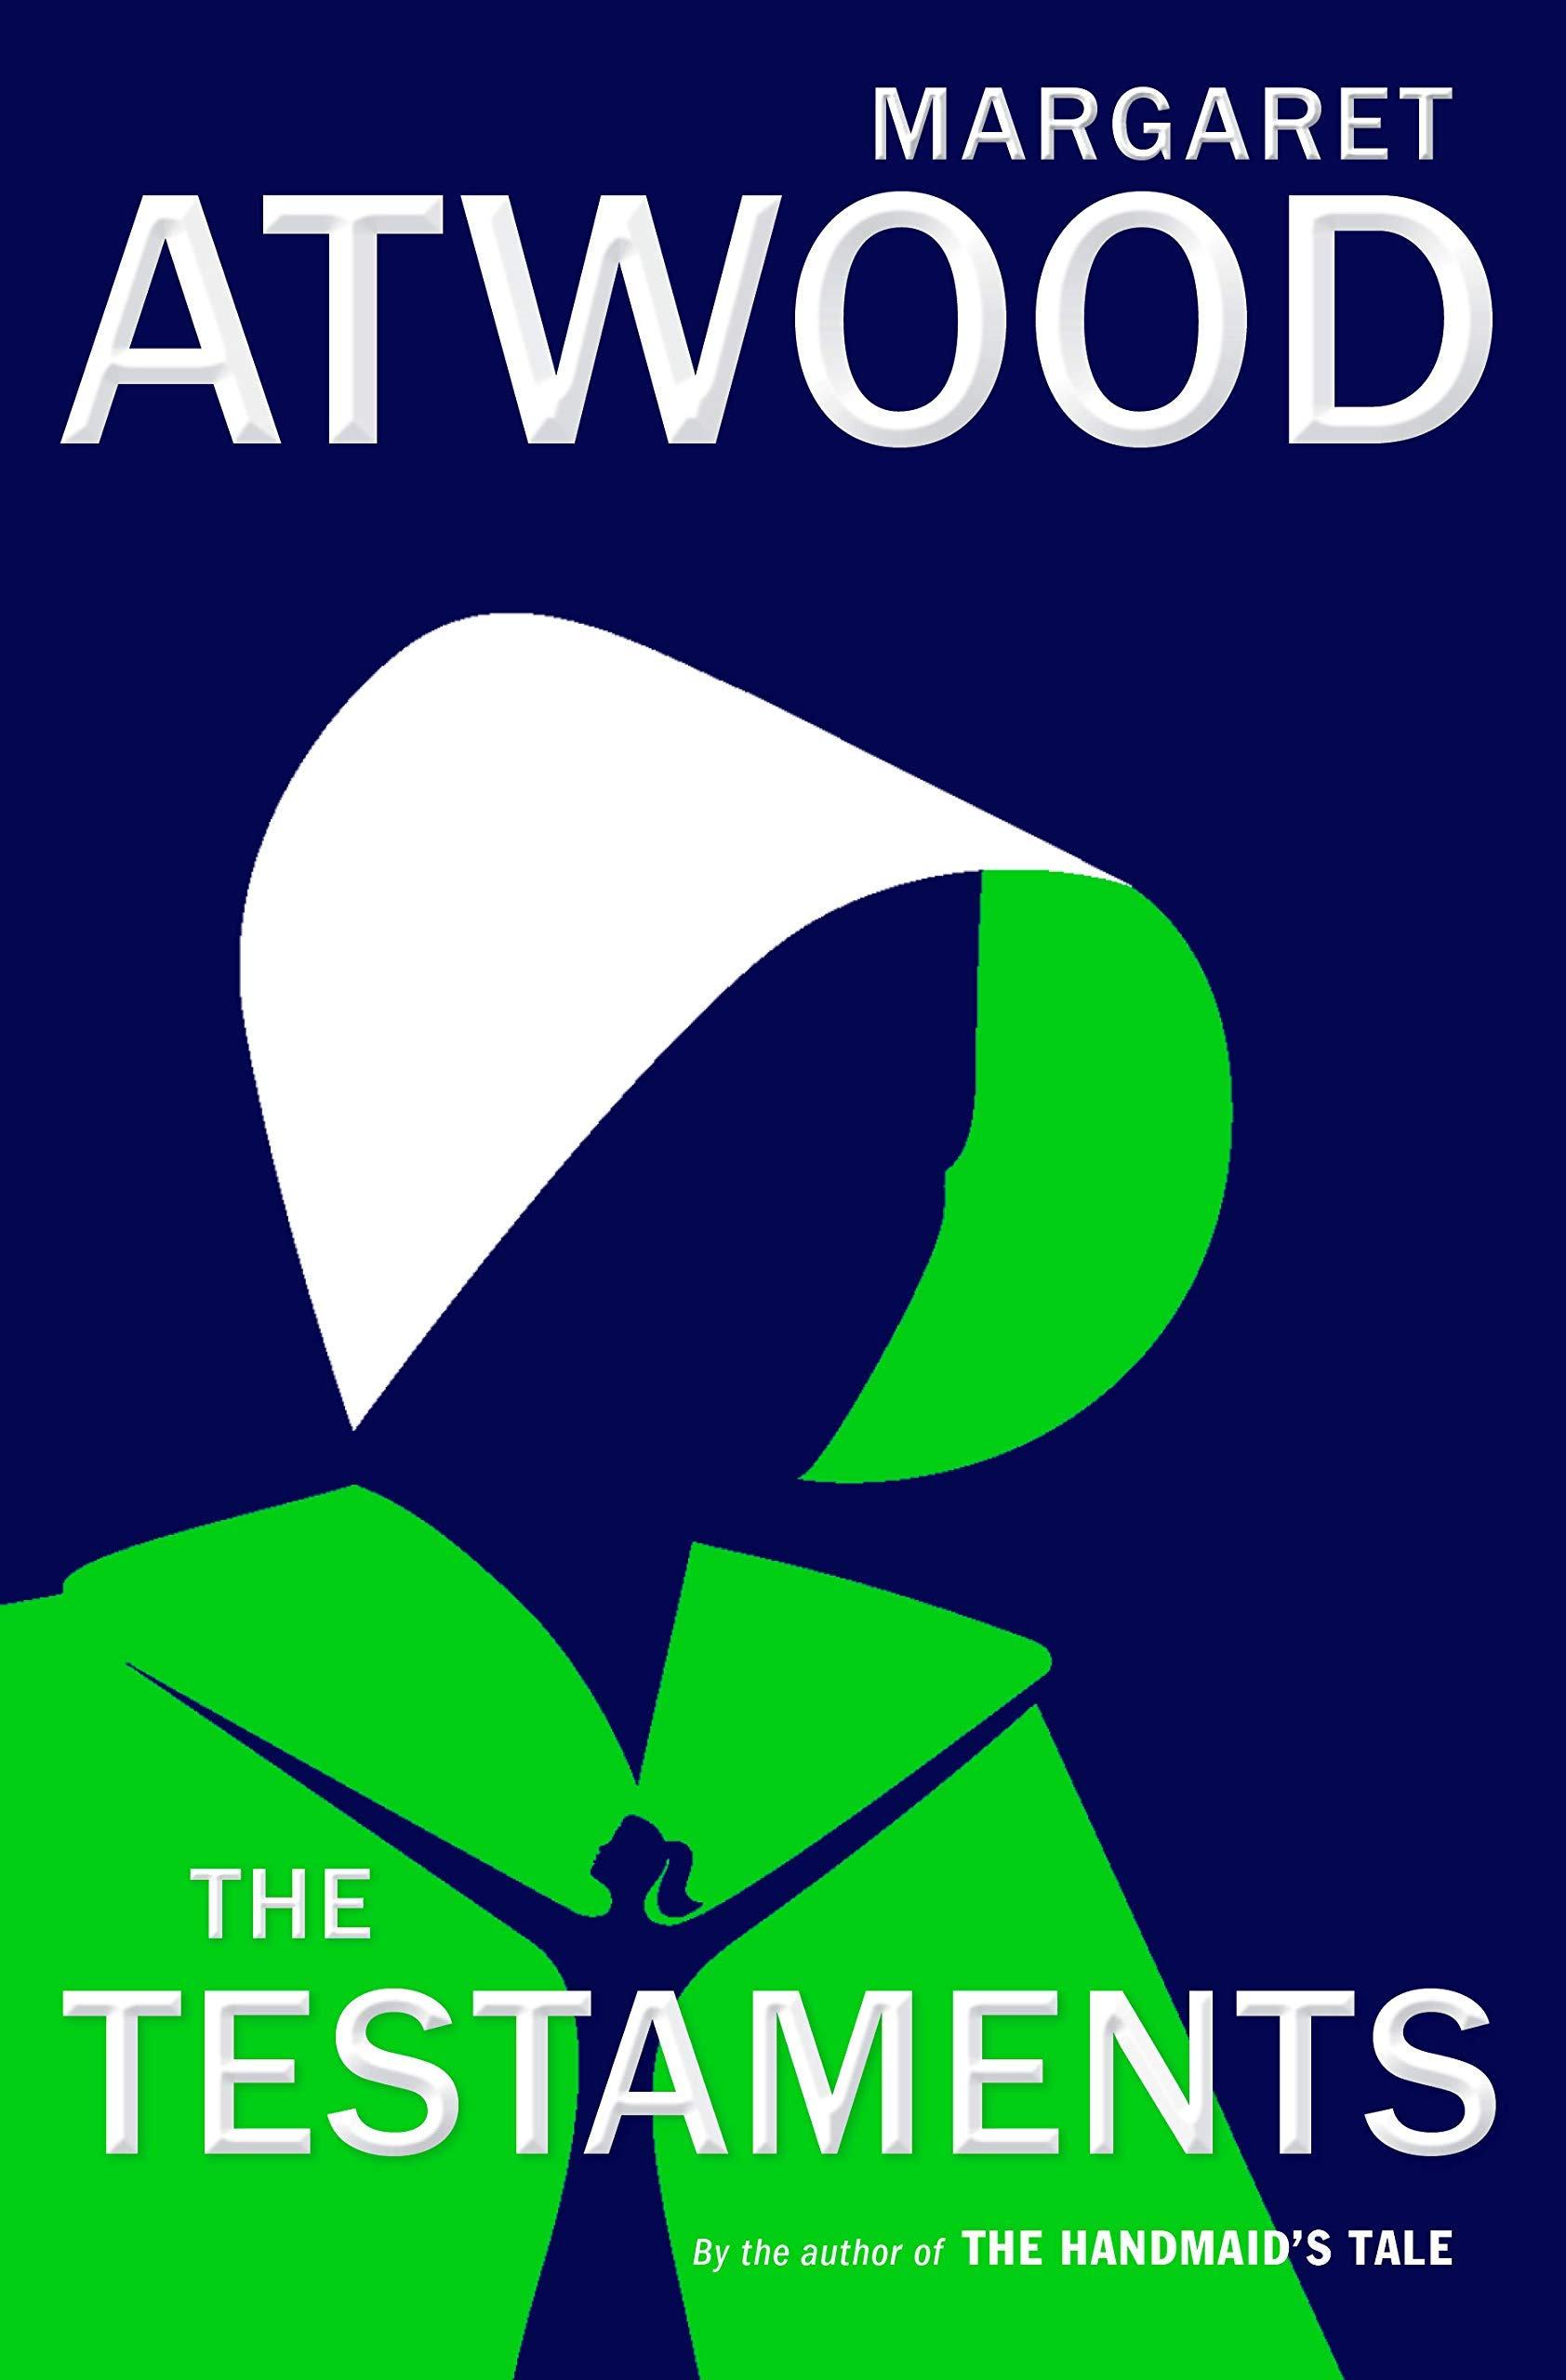 The Testaments: The Sequel to The Handmaid's Tale: Atwood, Margaret: 9780385543781: Amazon.com: Books